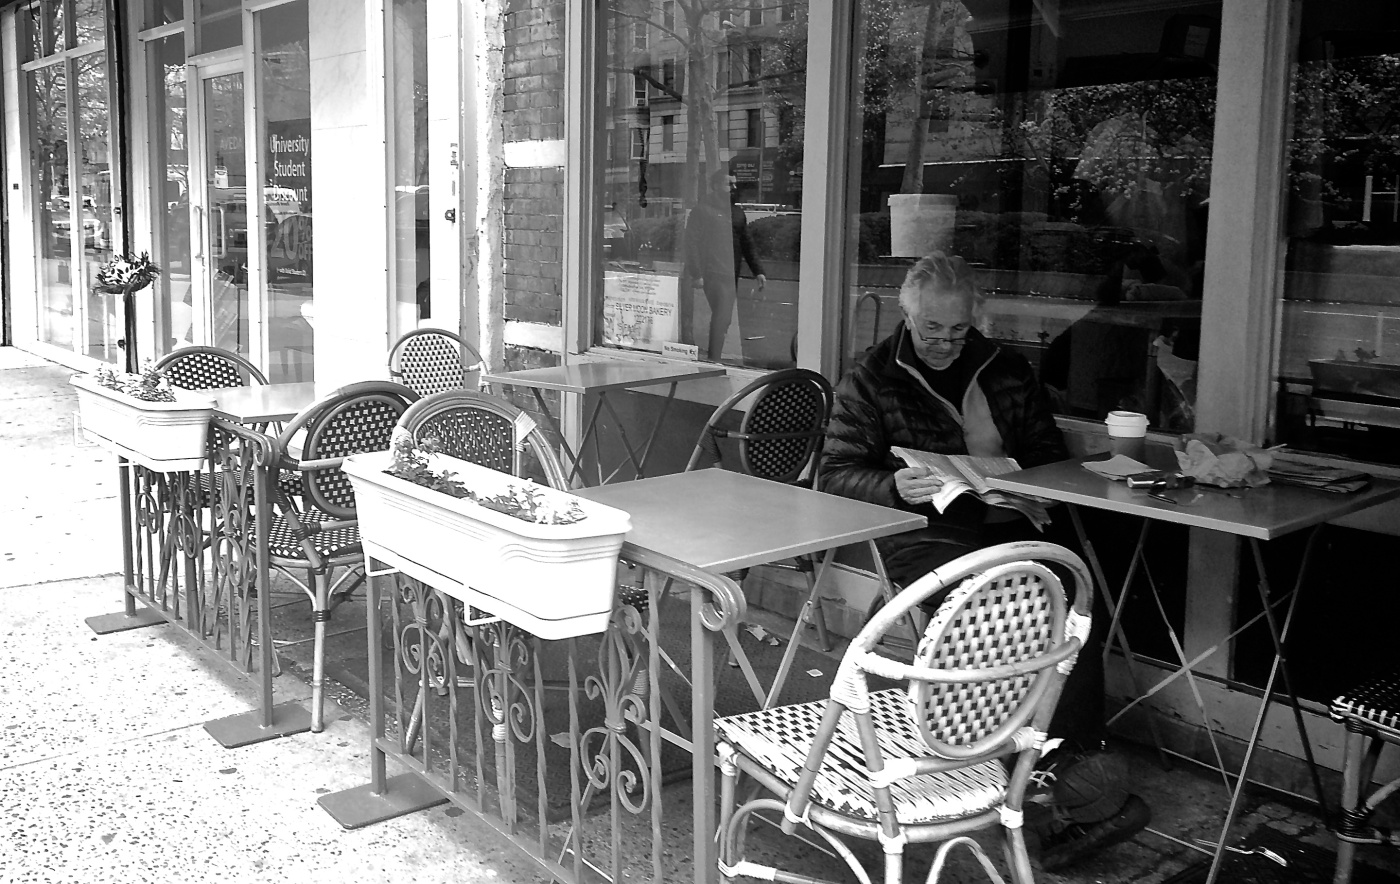 Day 113-4 outdoor cafe